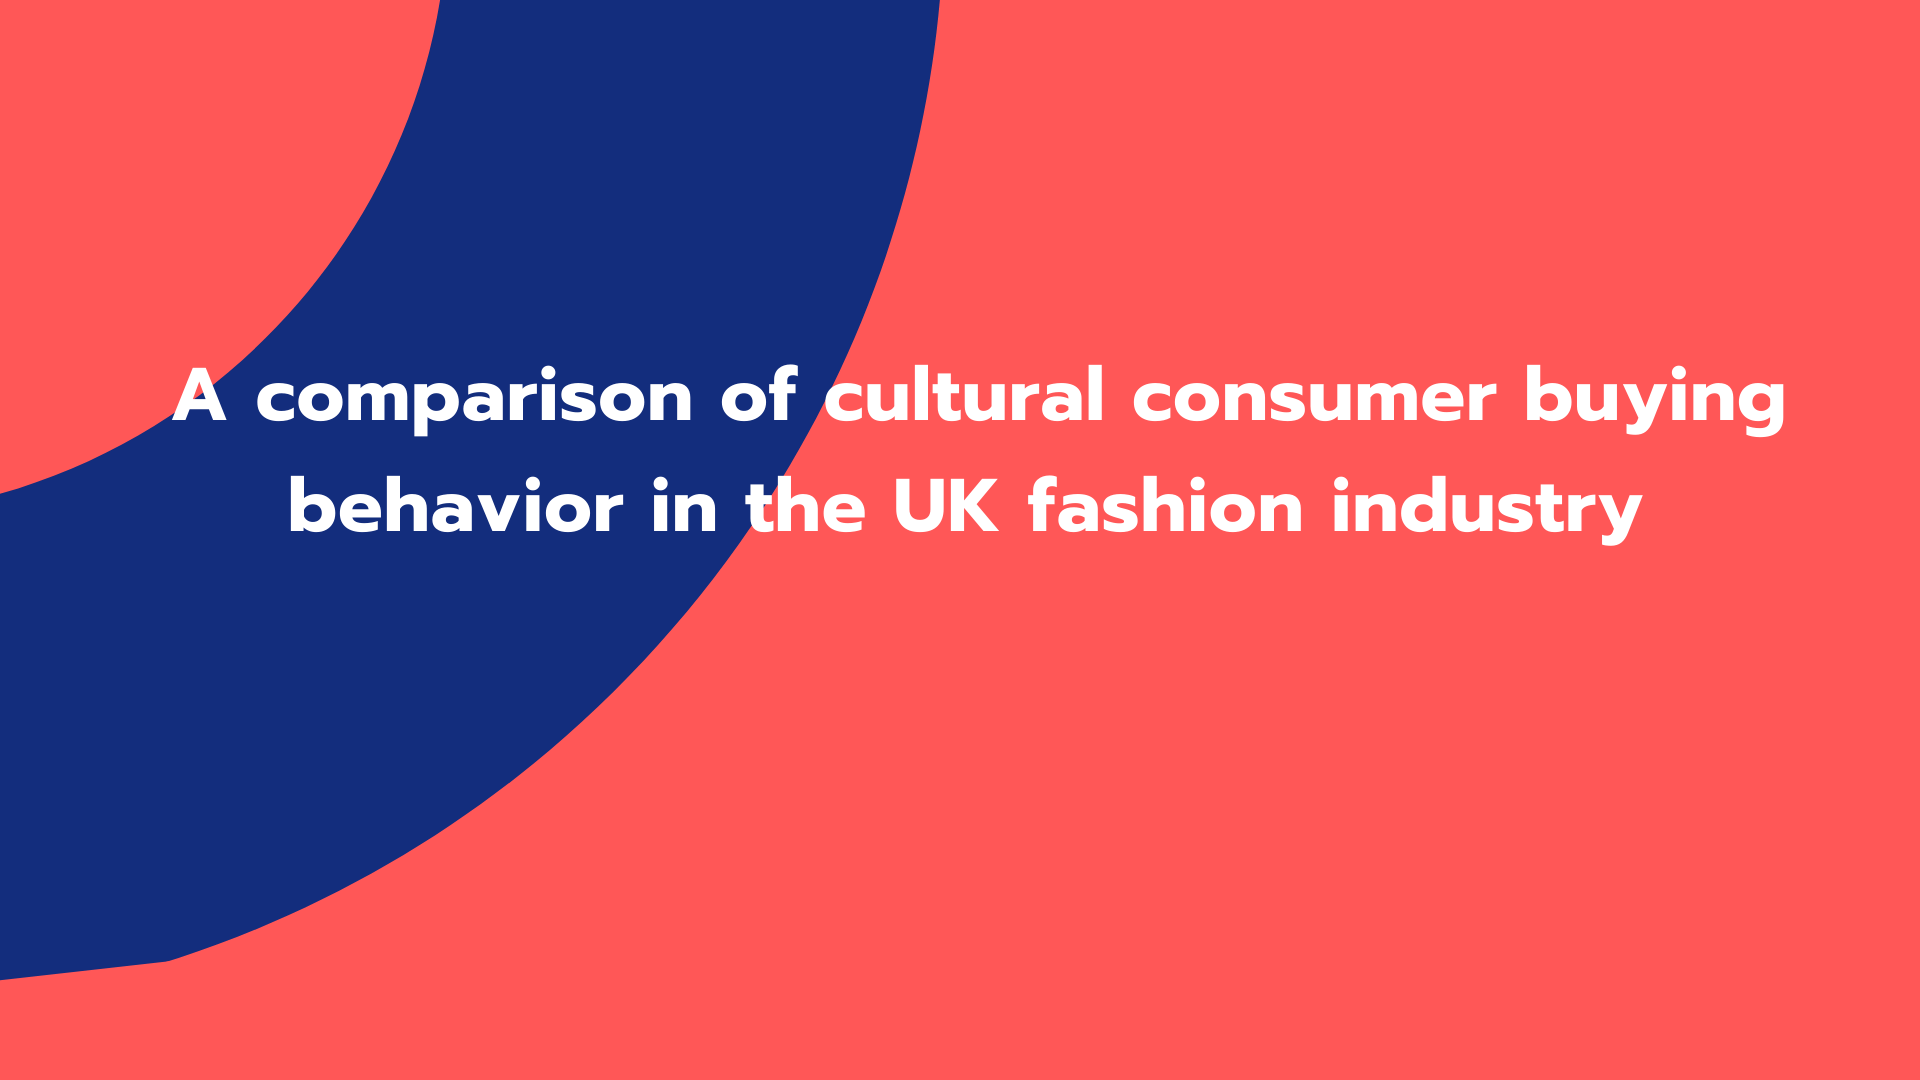 A comparison of cultural consumer buying behavior in the UK fashion industry